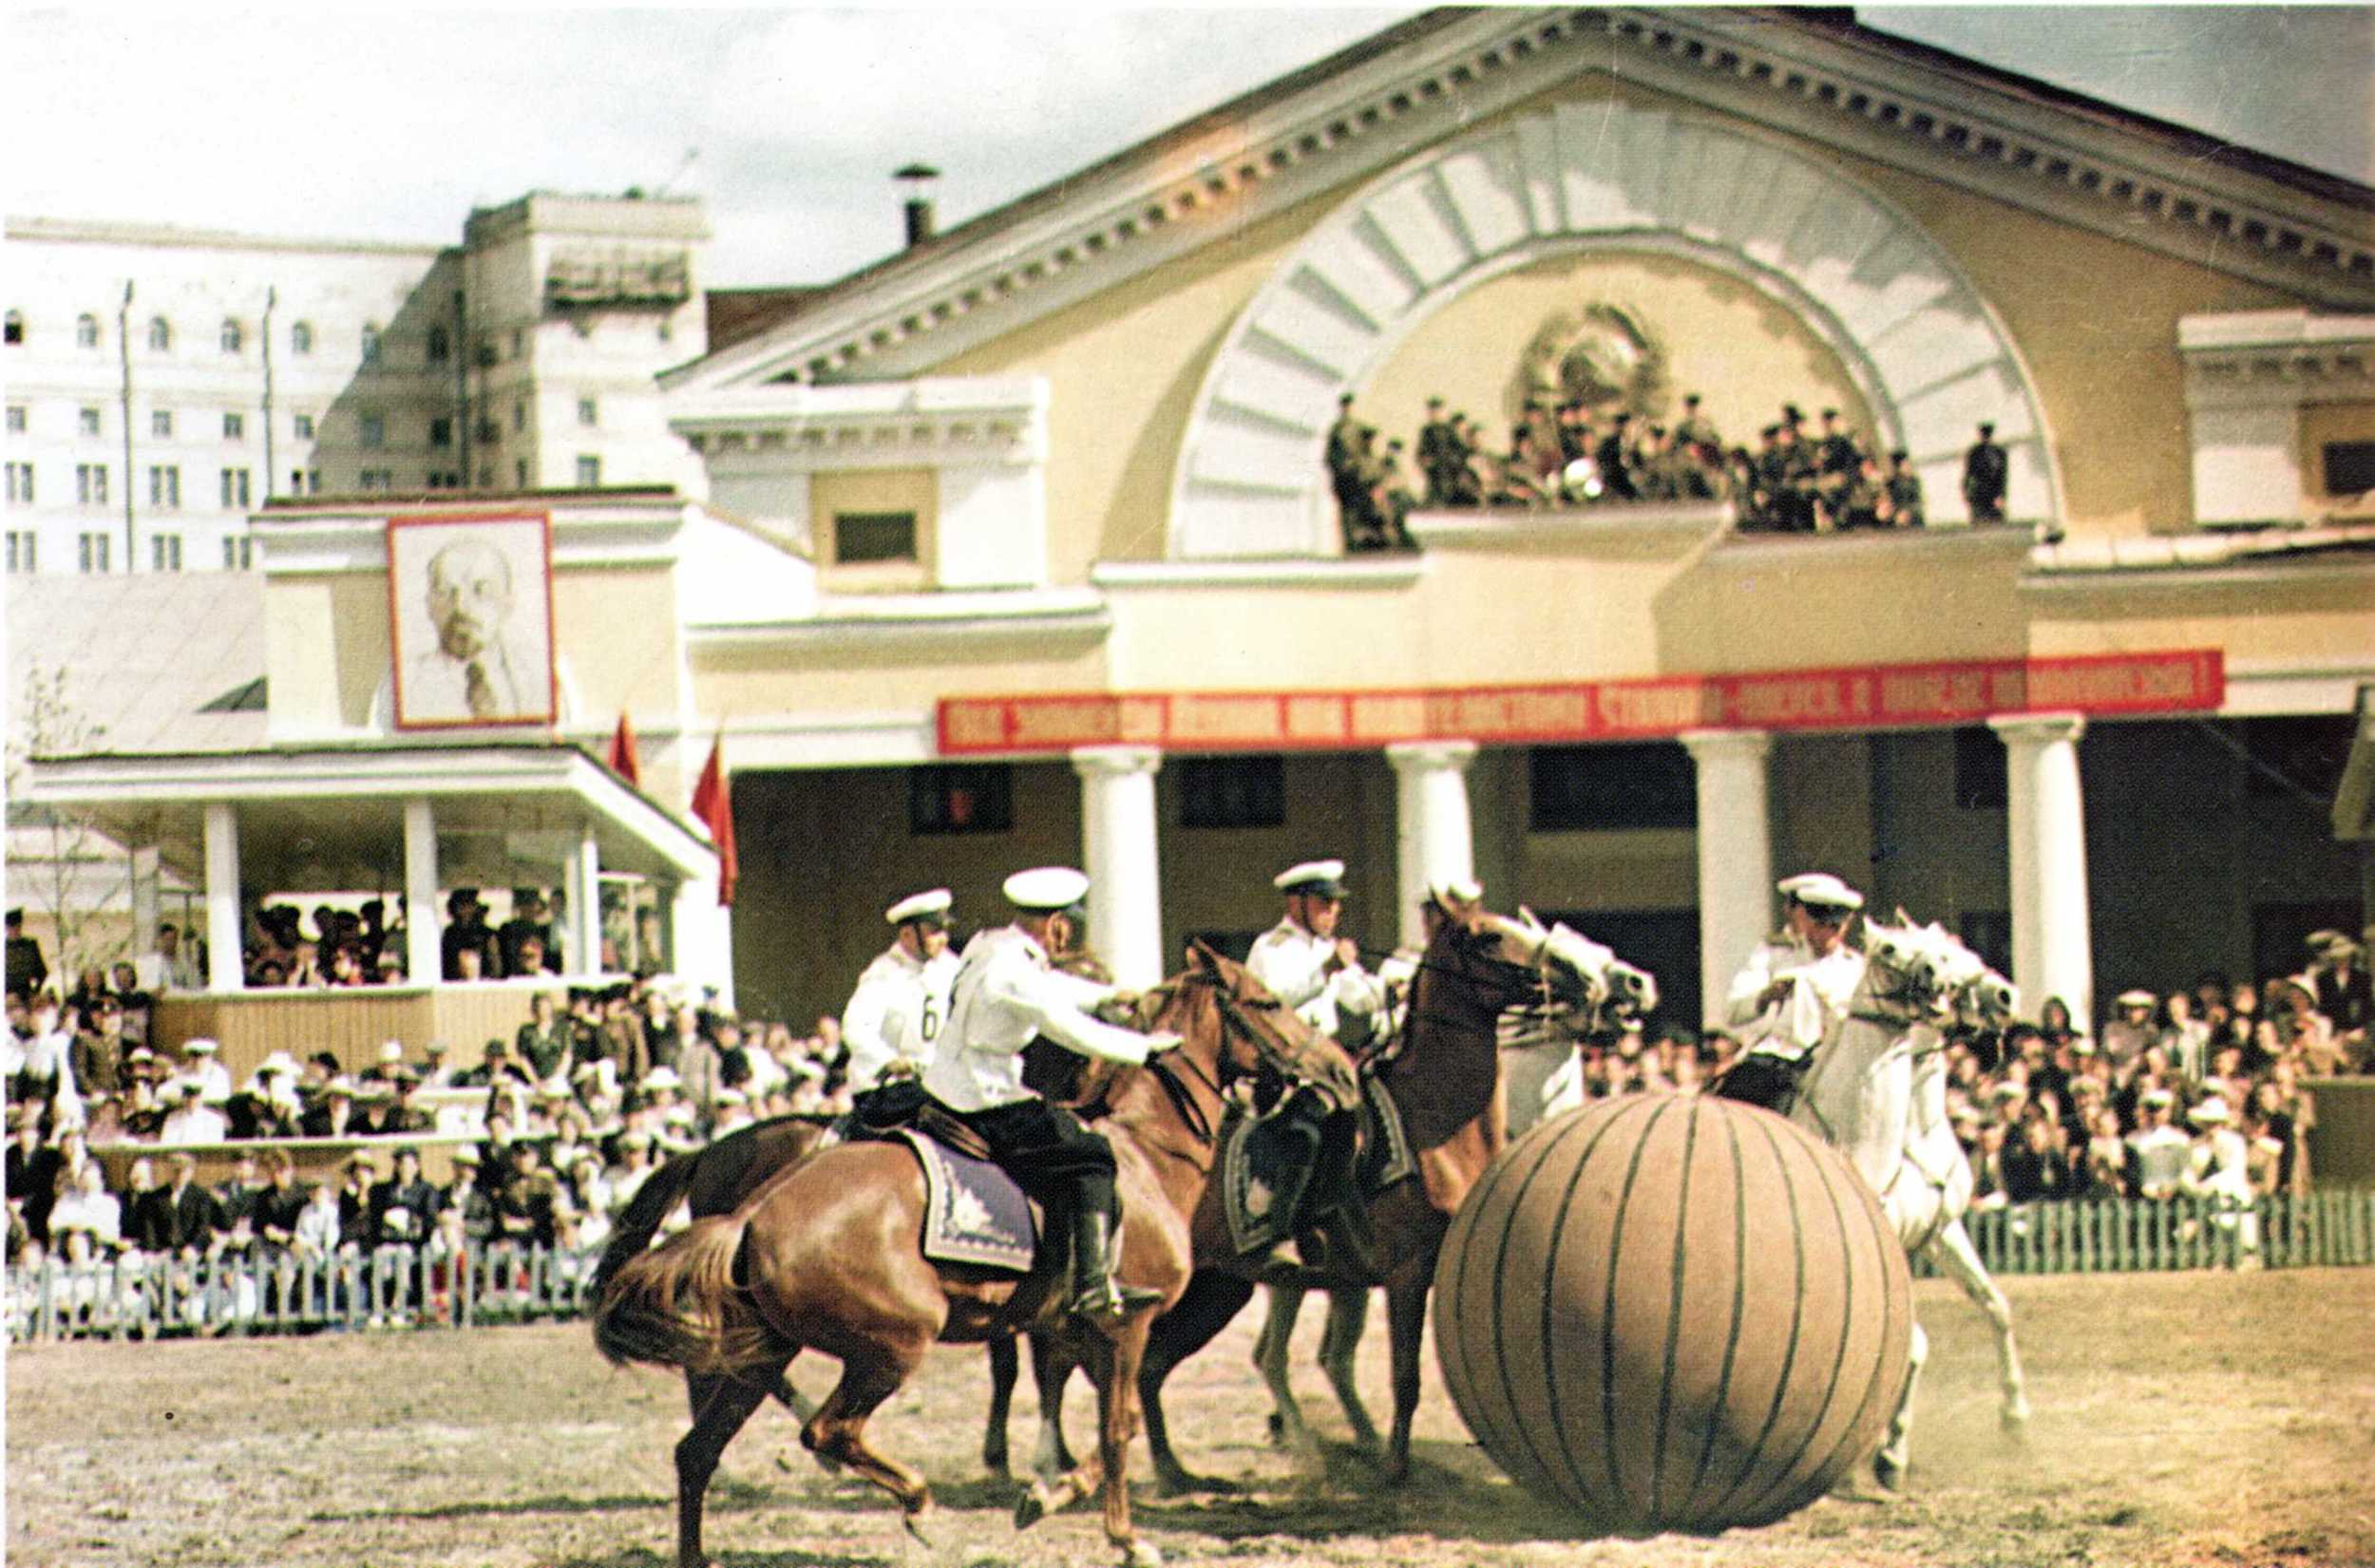 Moscow Moskou pushball